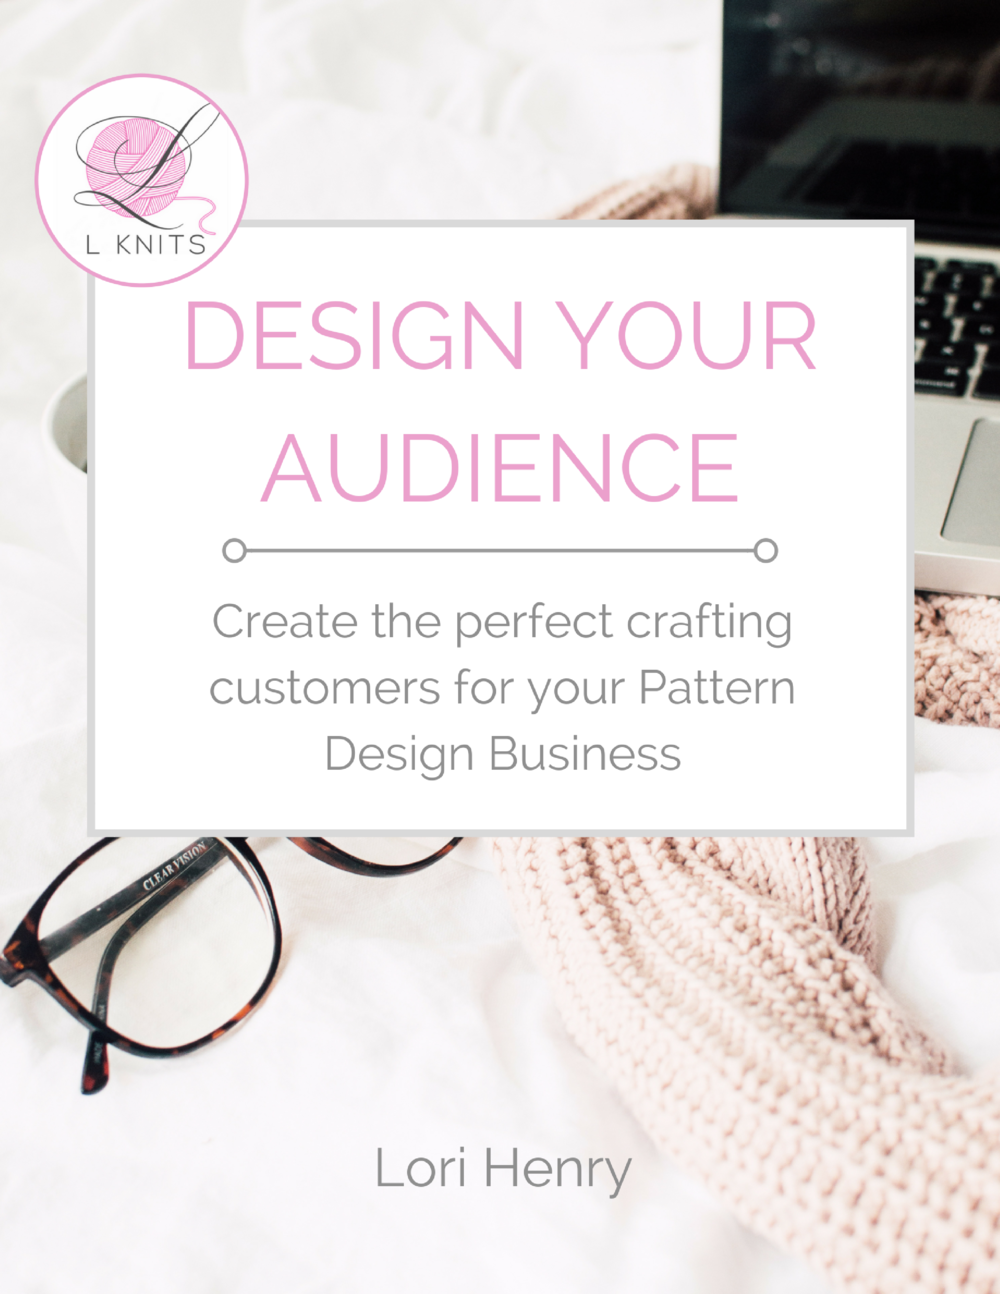 DESIGN YOUR AUDIENCE Workbook | L Knits.com .png